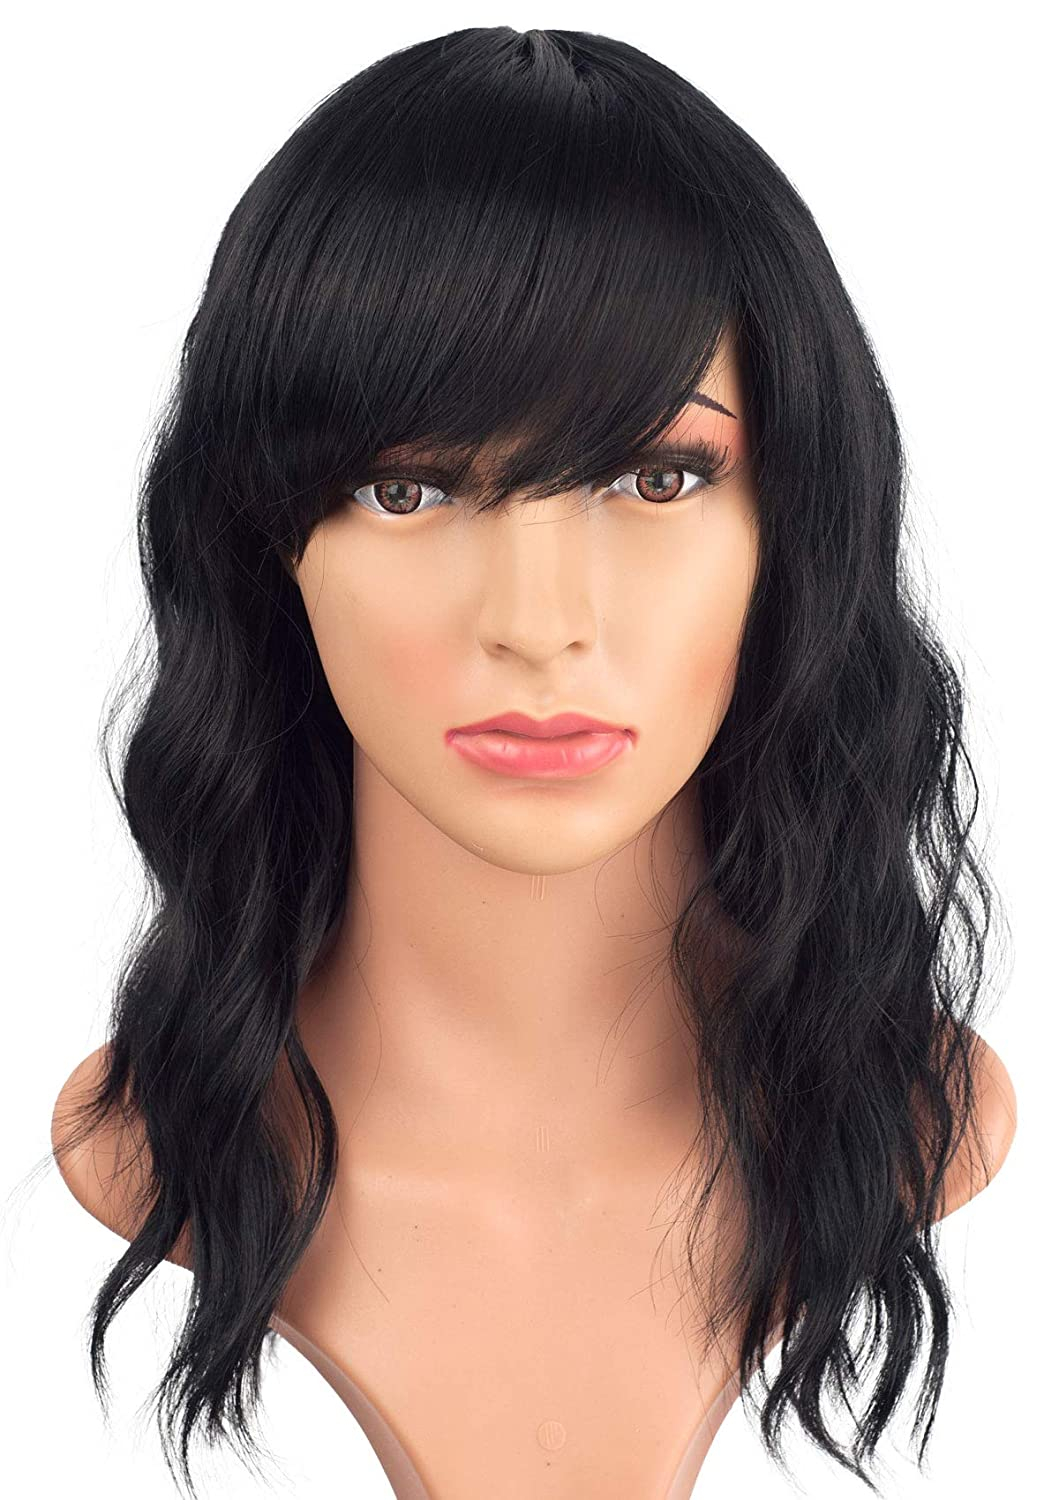 Medium Long Black Wavy Wigs For Women Synthetic Full Hair Natural Black Wigs With Side Bangs For